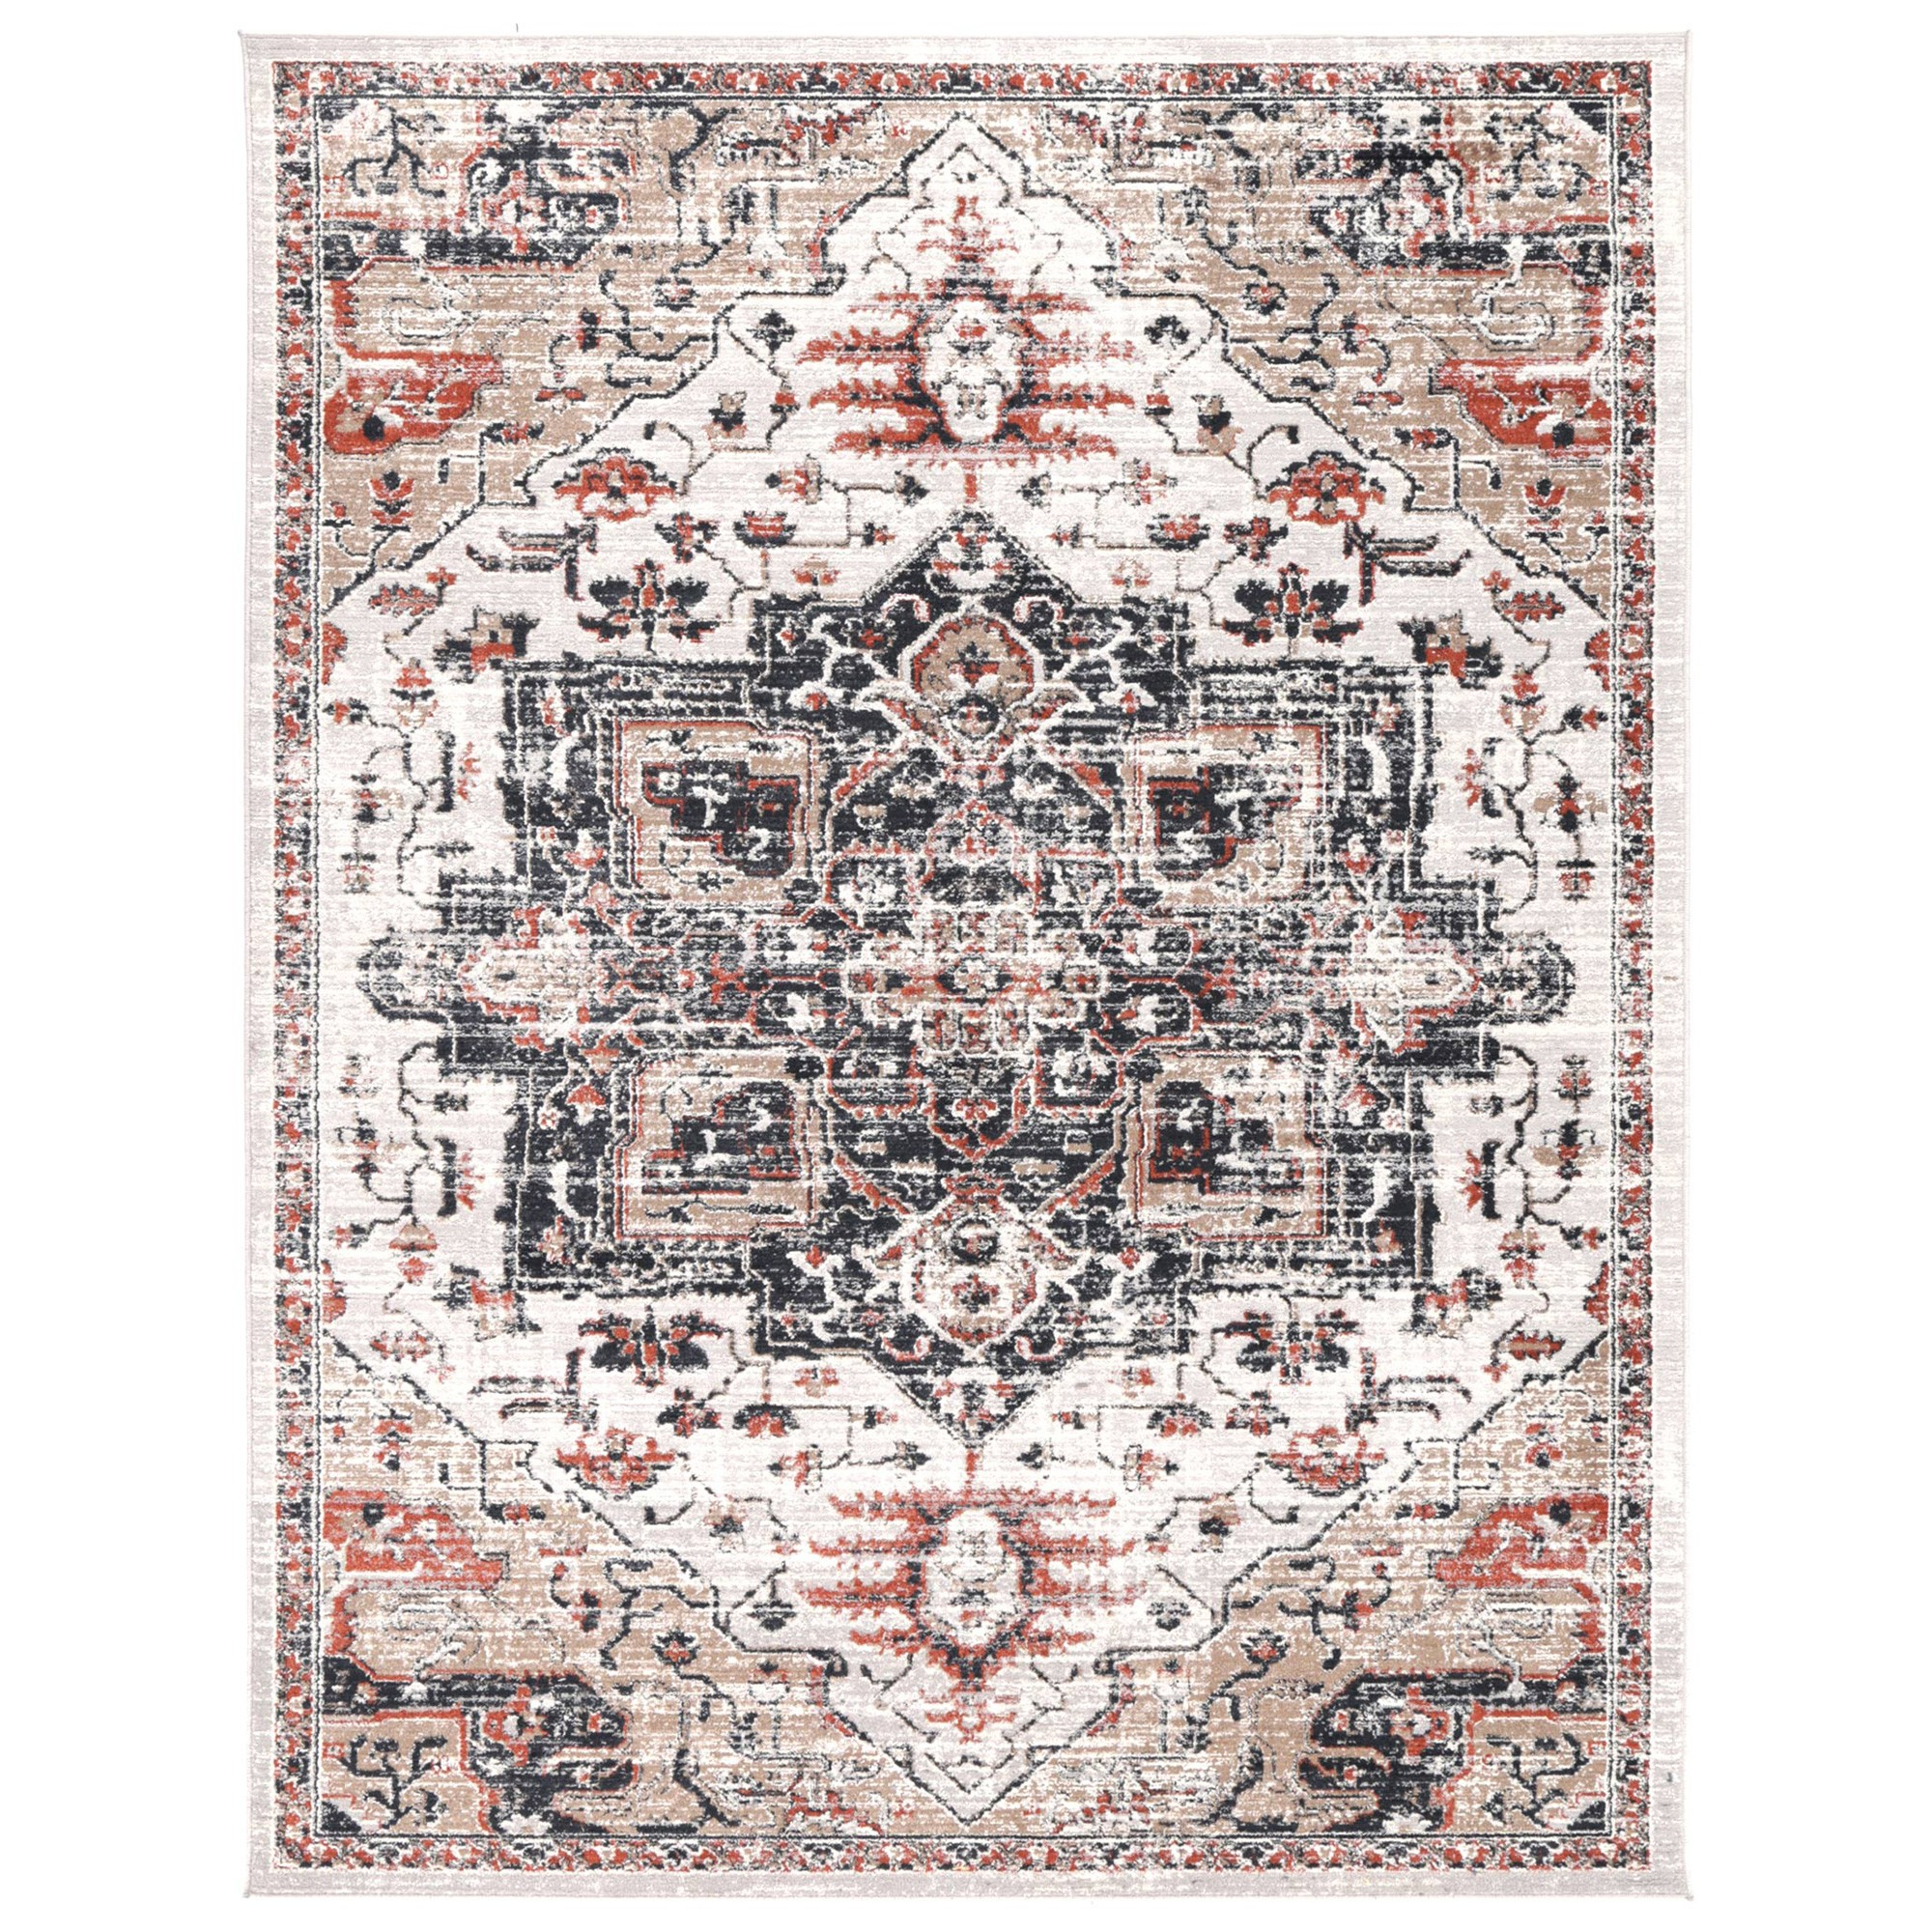 Havana No.02 Transitional Oriental Rug, 380x280cm